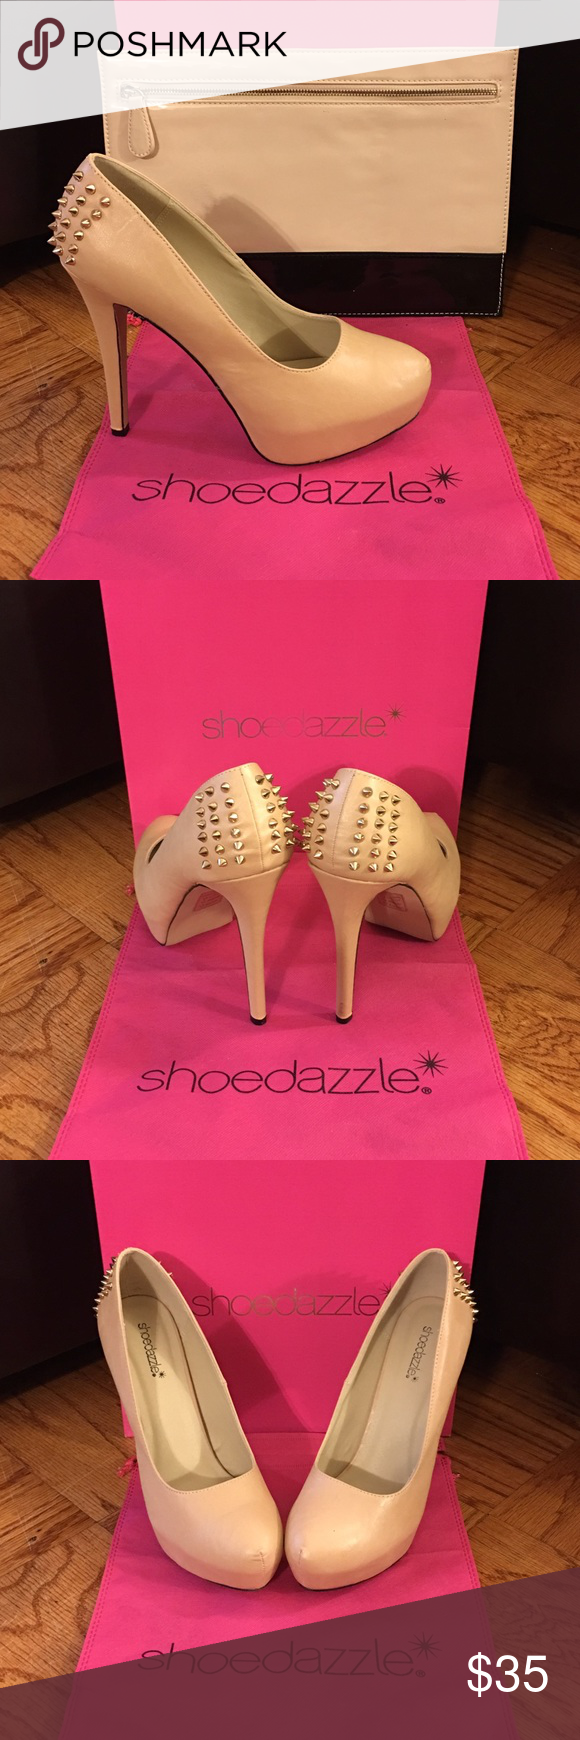 Package Deal - Platform Pump & Envelope Clutch Package Deal Shoedazzle Covered Platform Pumps - Nude - Rose Gold Spikes on Back & Forever XXI Envelope Clutch - Nude and Black - Rose Gold Zipper Closure. They compliment each other very well! But I will make a separate listing if you want one and not the other, just let me know! Shoedazzle Shoes Platforms